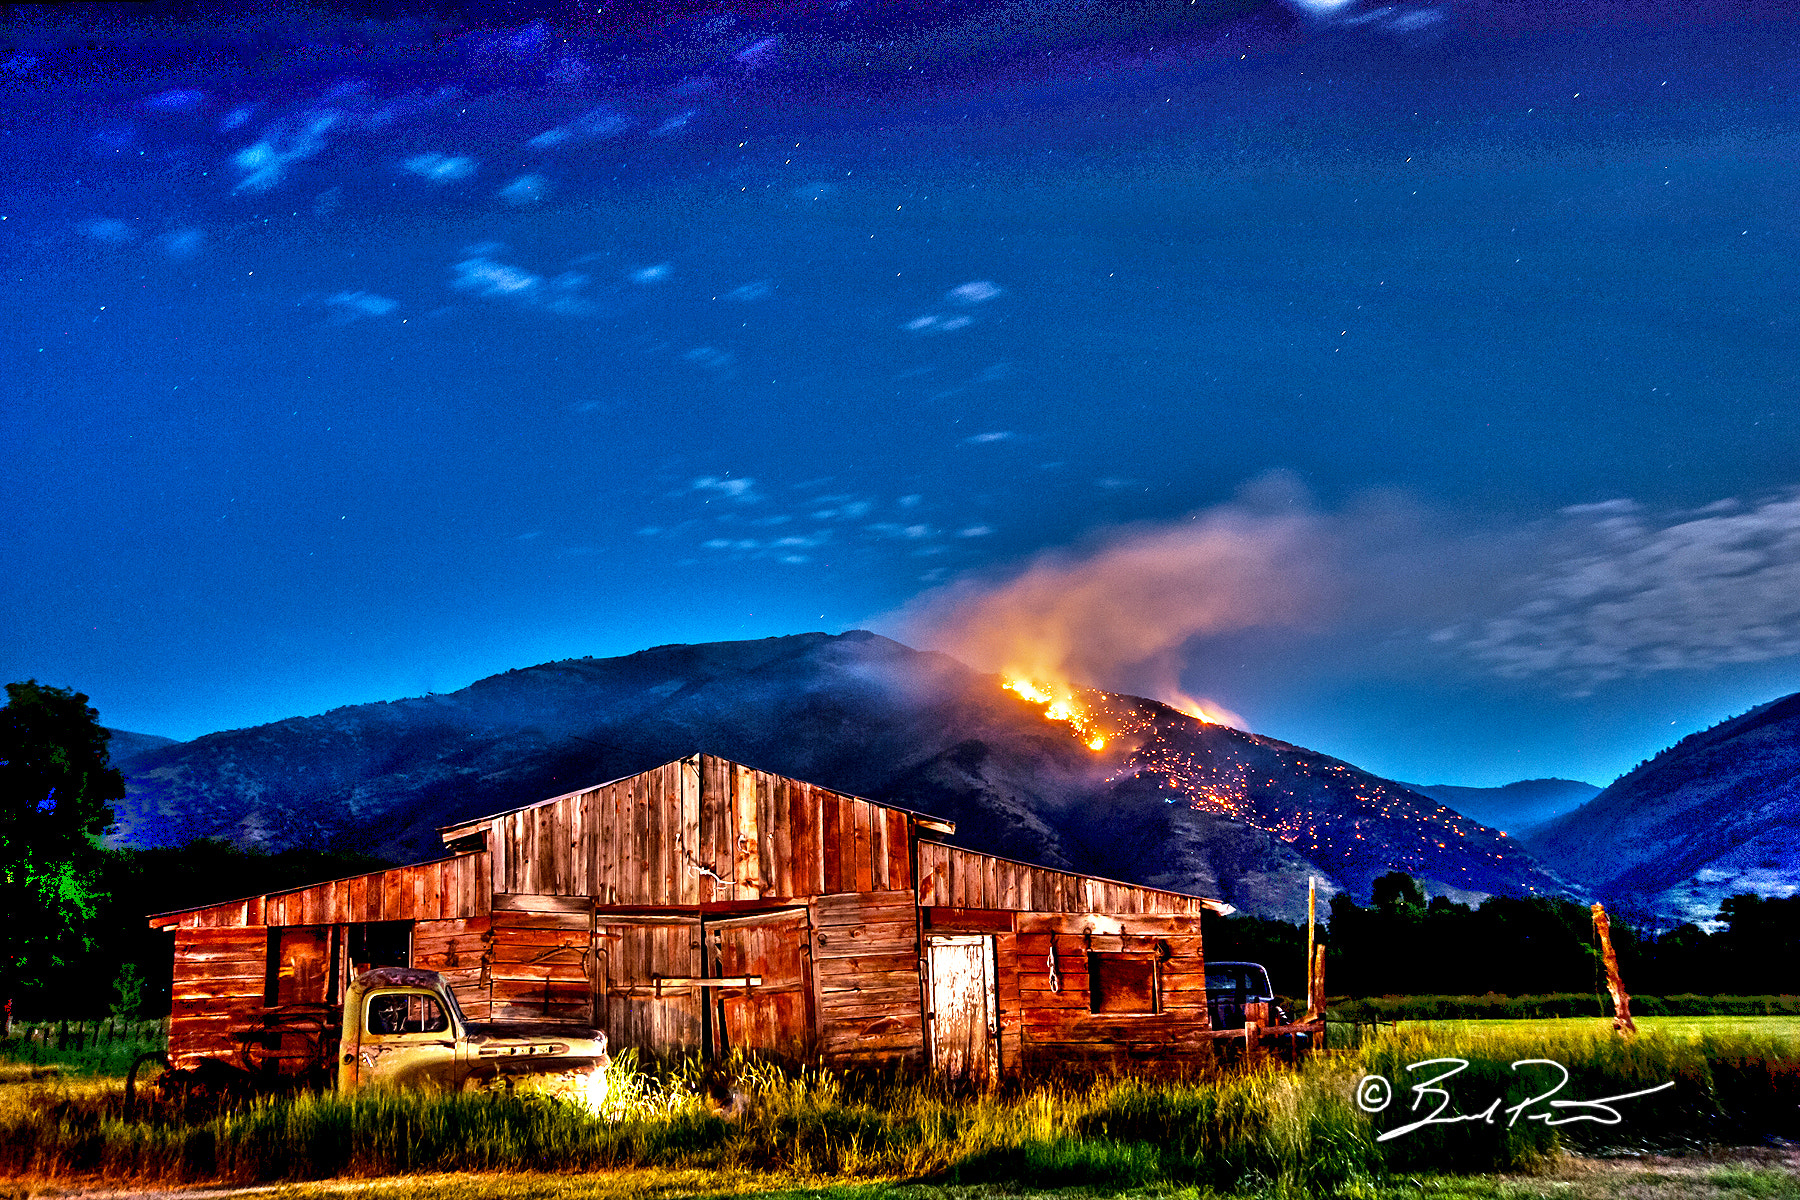 Photograph heat of night by Brad Peterson on 500px